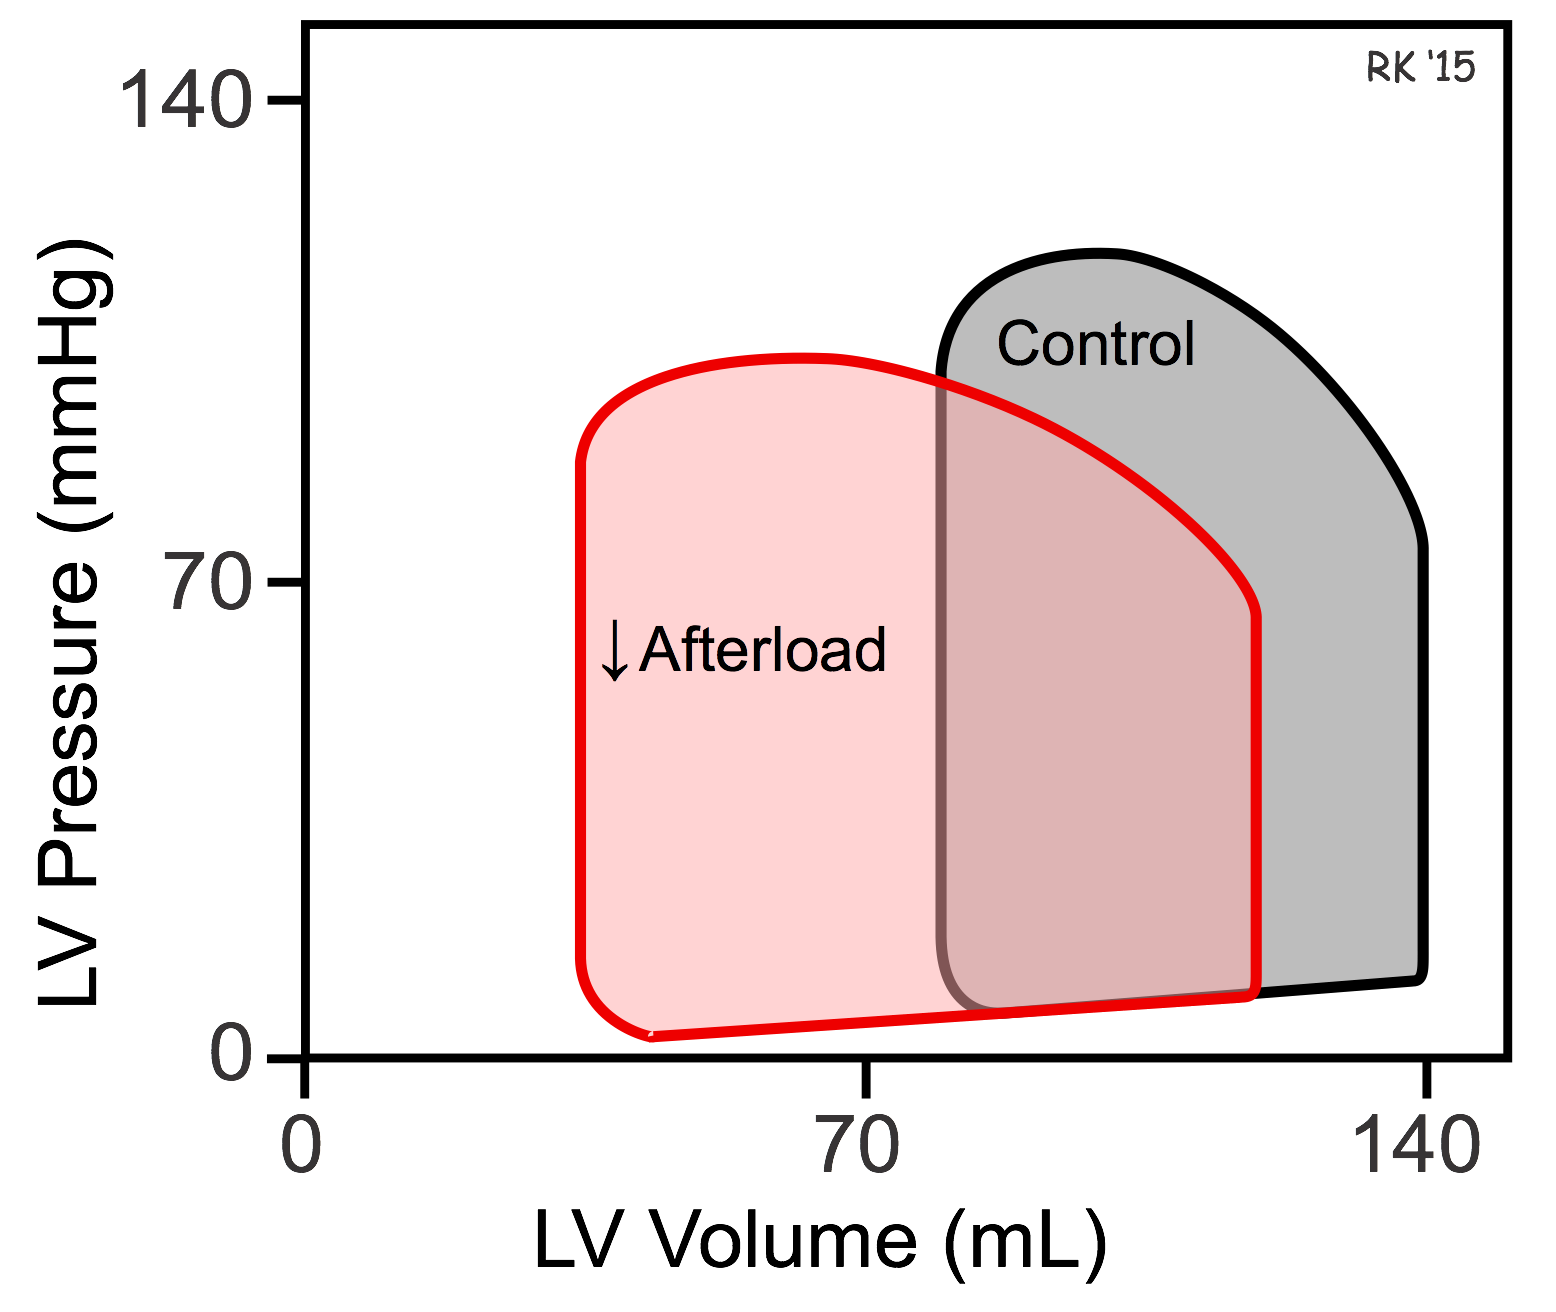 Afterload effects on ventricular pressure-volume loop